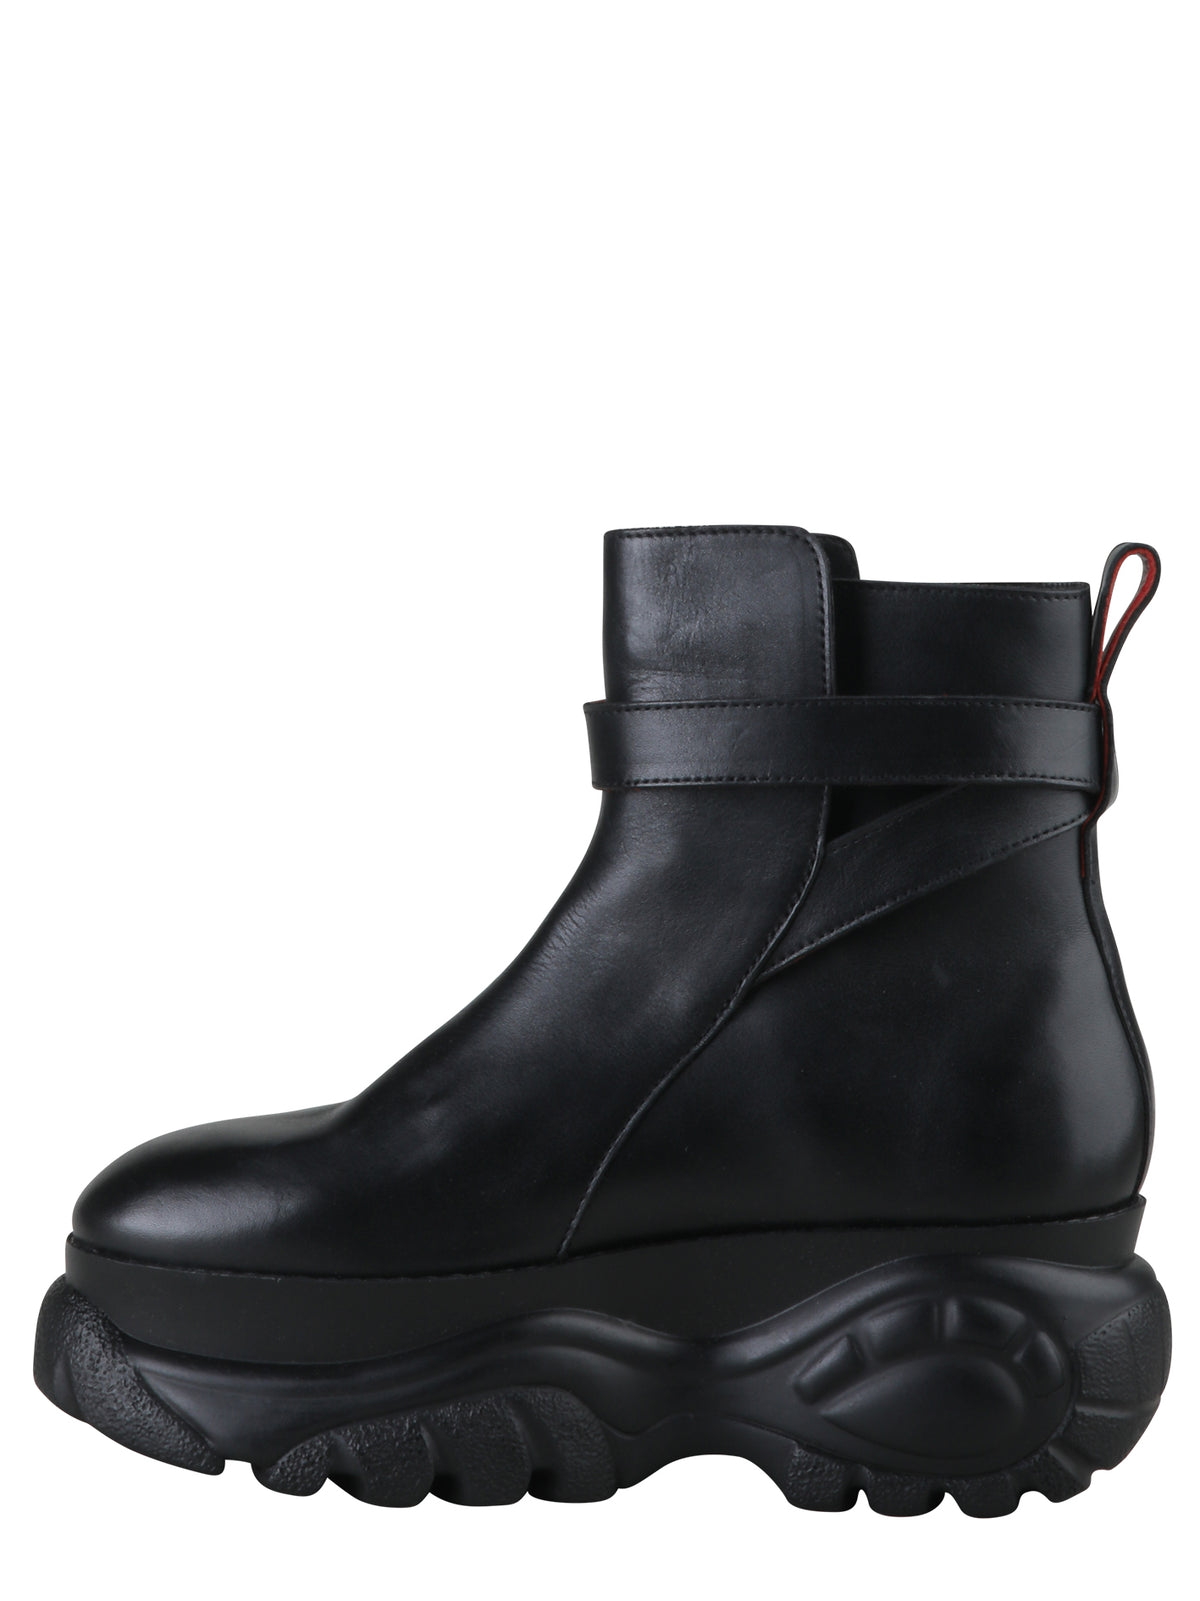 Buffalo by 032c Jodhpur Ankle Boot Black - 032c